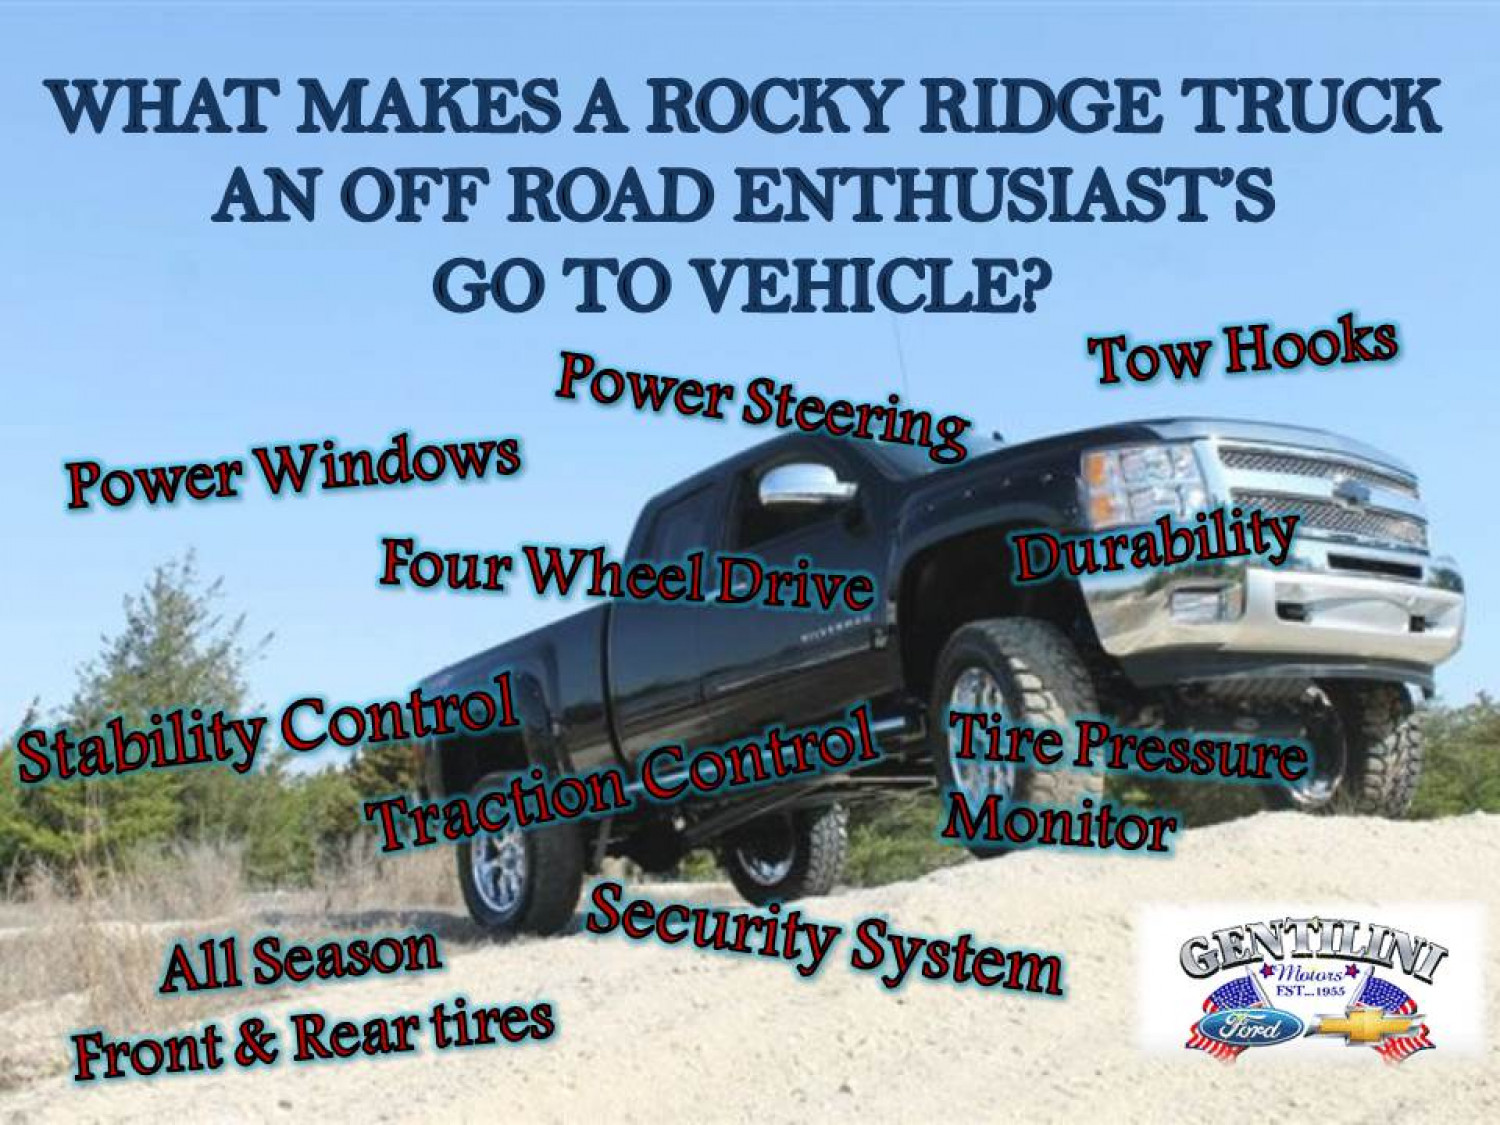 What Makes A Rocky Ridge Truck An Off Road Enthusiast's Go To Vehicle? Infographic